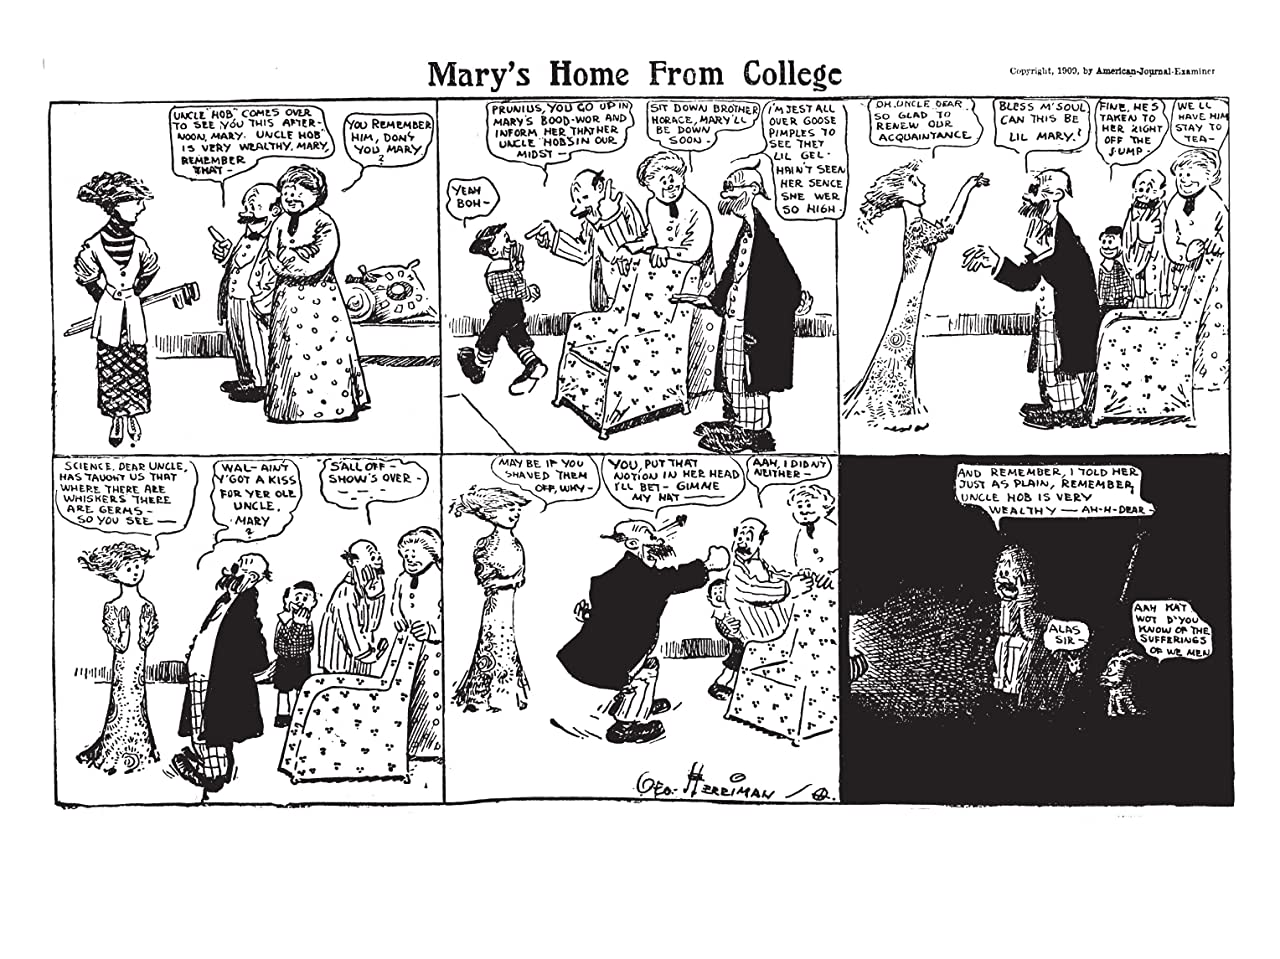 Krazy & Ignatz: 1933-1934 - Necromancy by the Blue Bean Bush